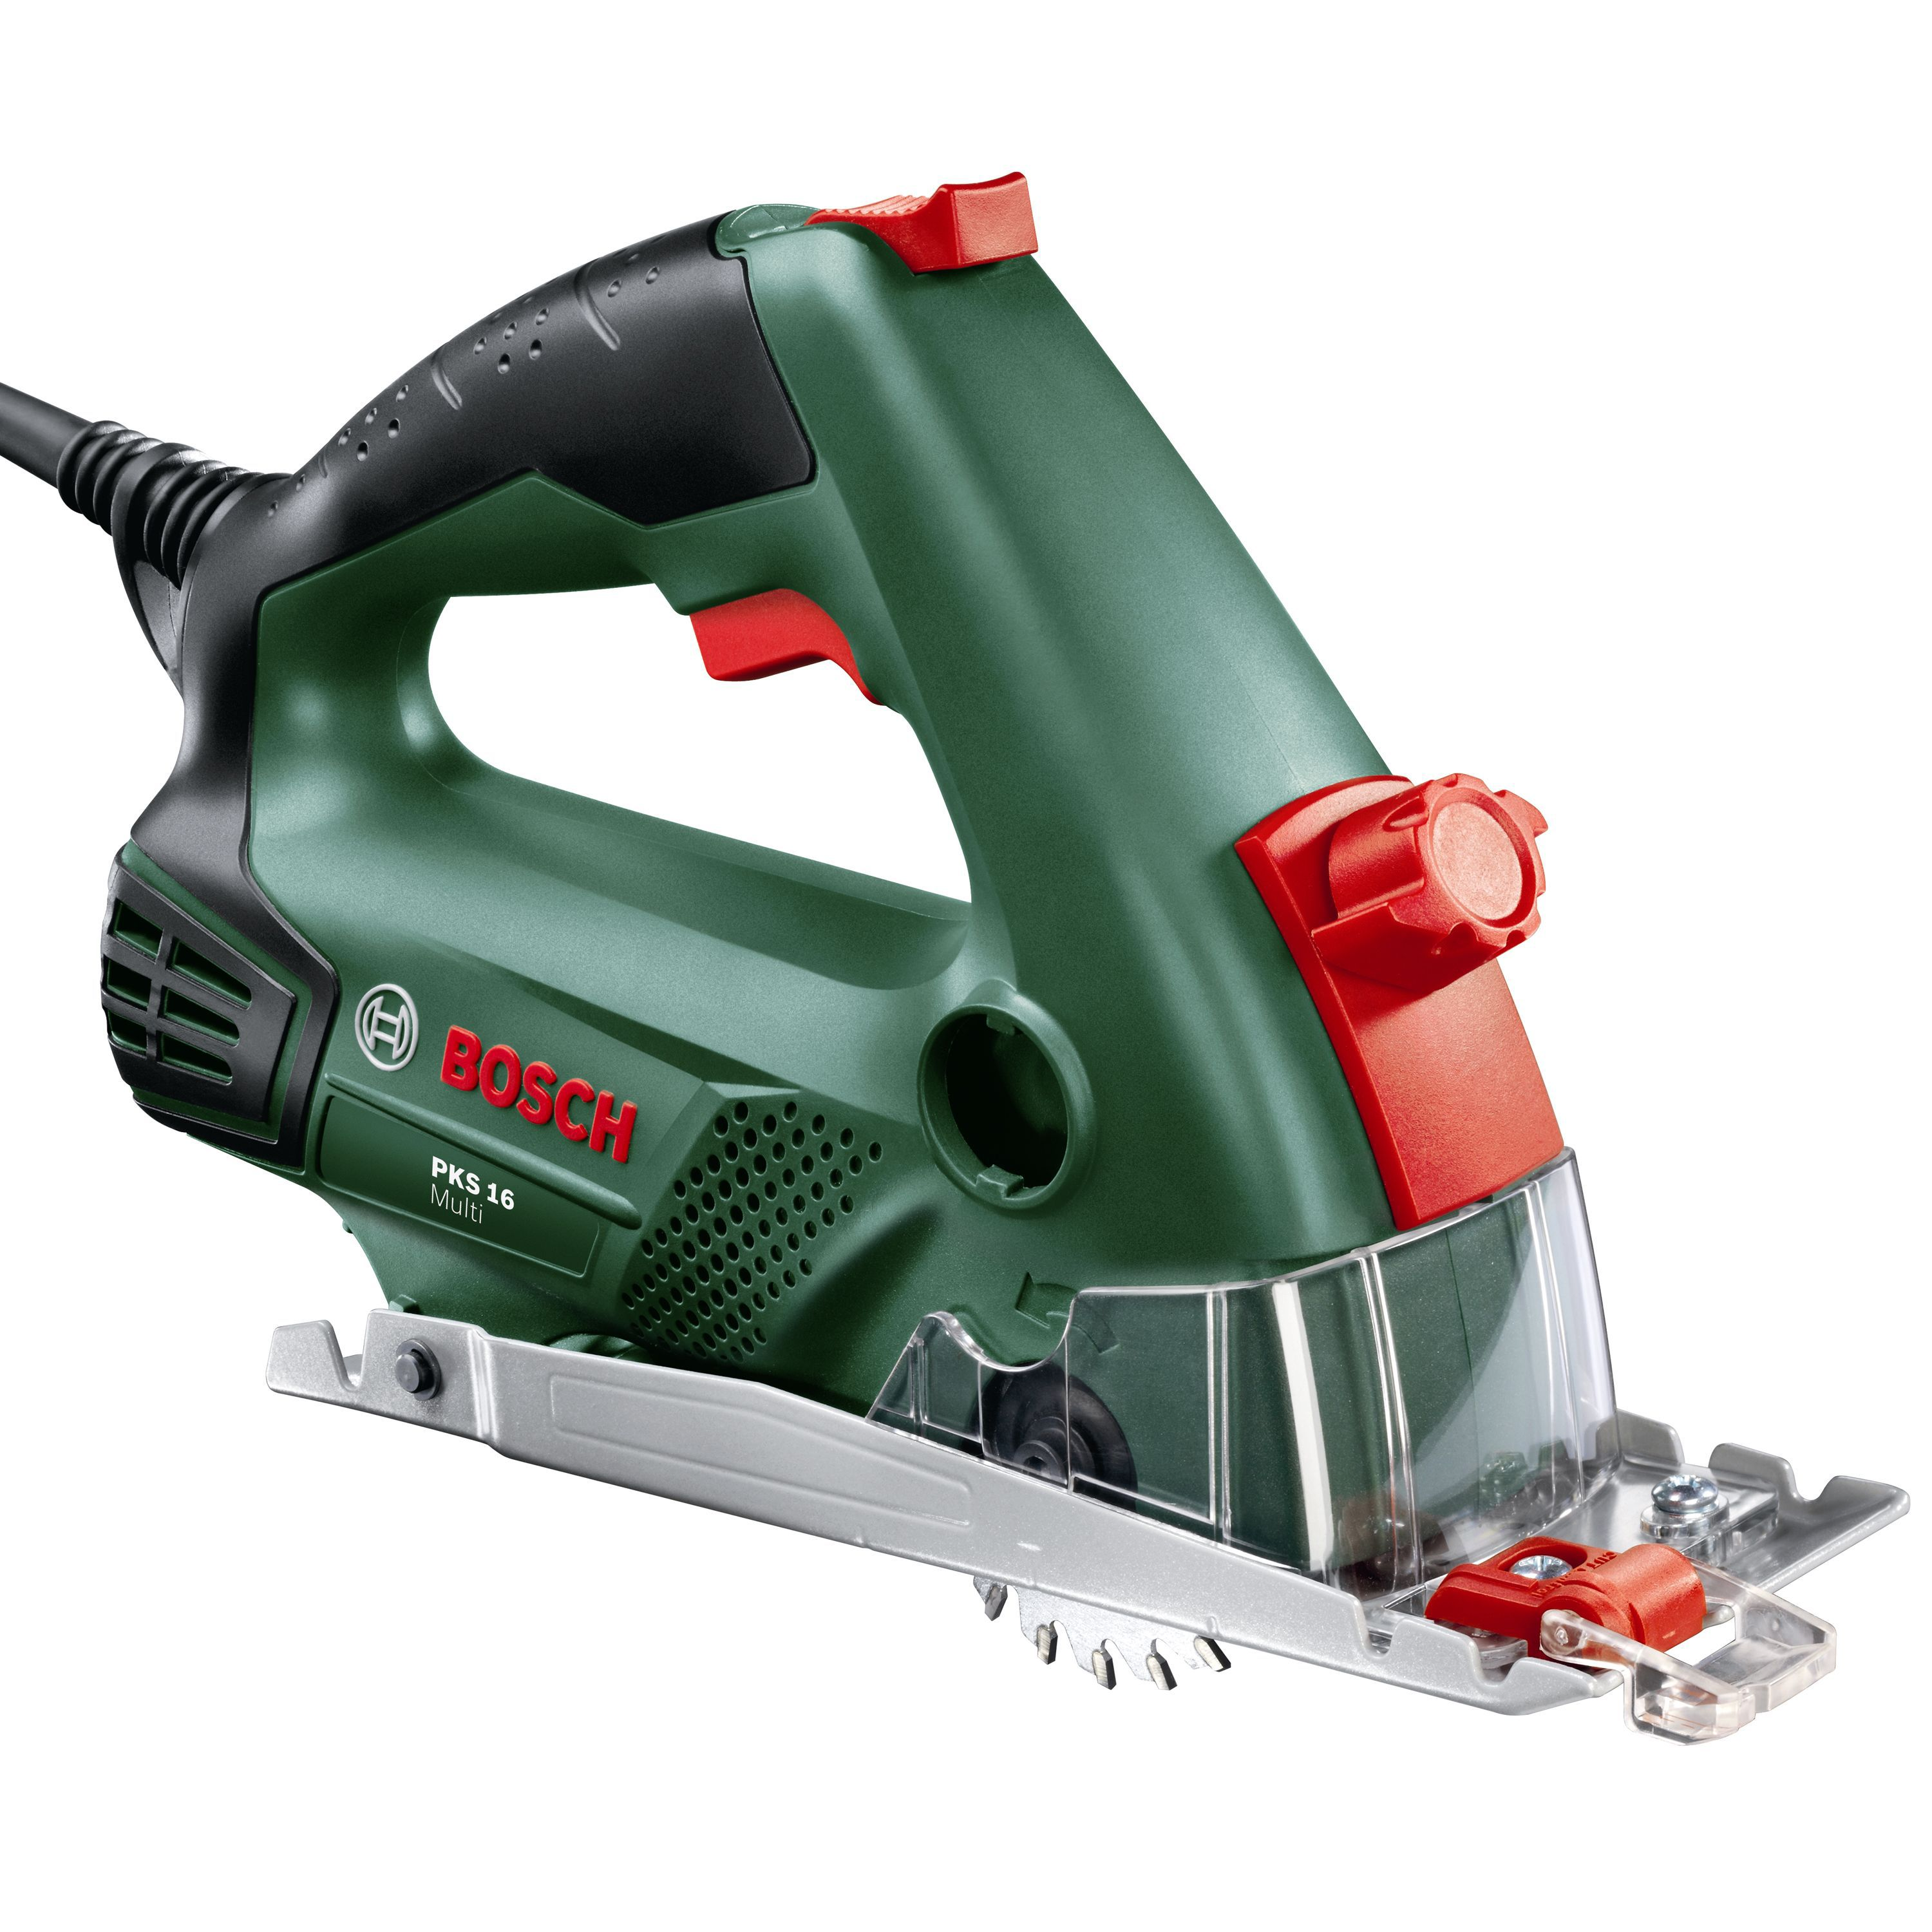 Bosch 400w 240v Multi Saw Pks 16 Multi